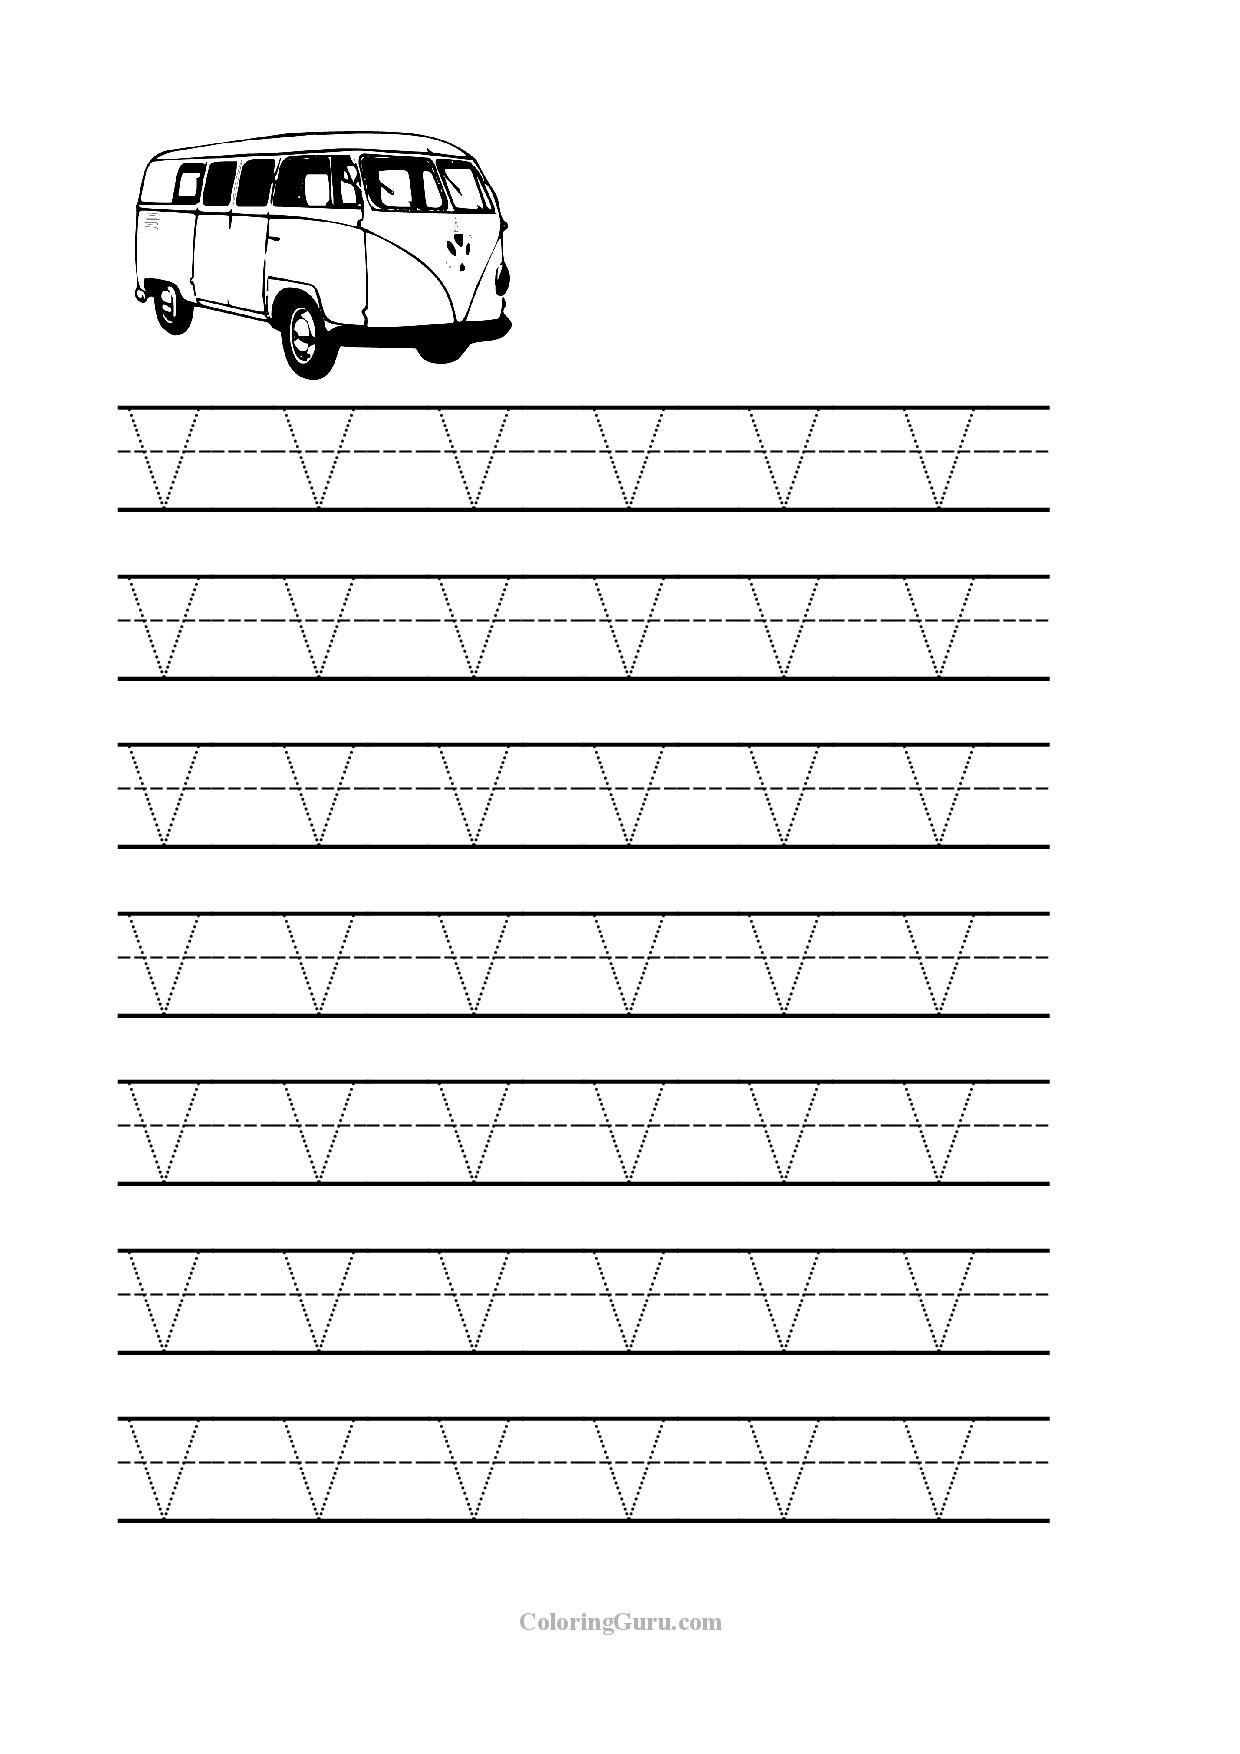 Letter V Worksheets Preschool Free Printable Tracing Letter V Worksheets for Preschool